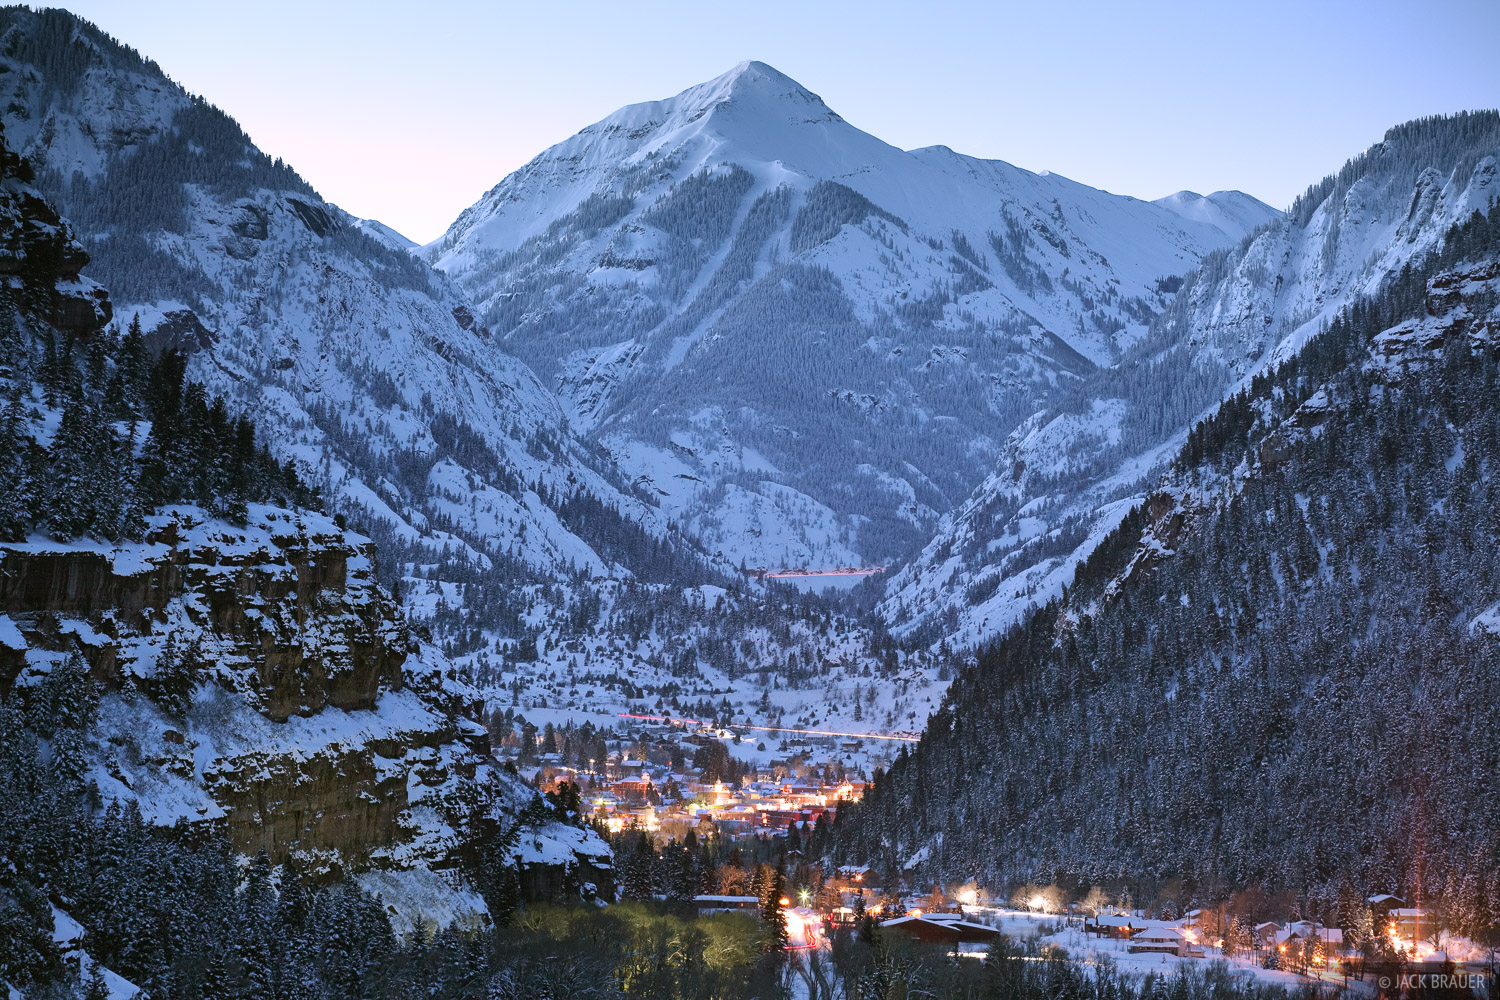 Mt. Abrams towers above the town of Ouray, Colorado on a clear winter morning in February.